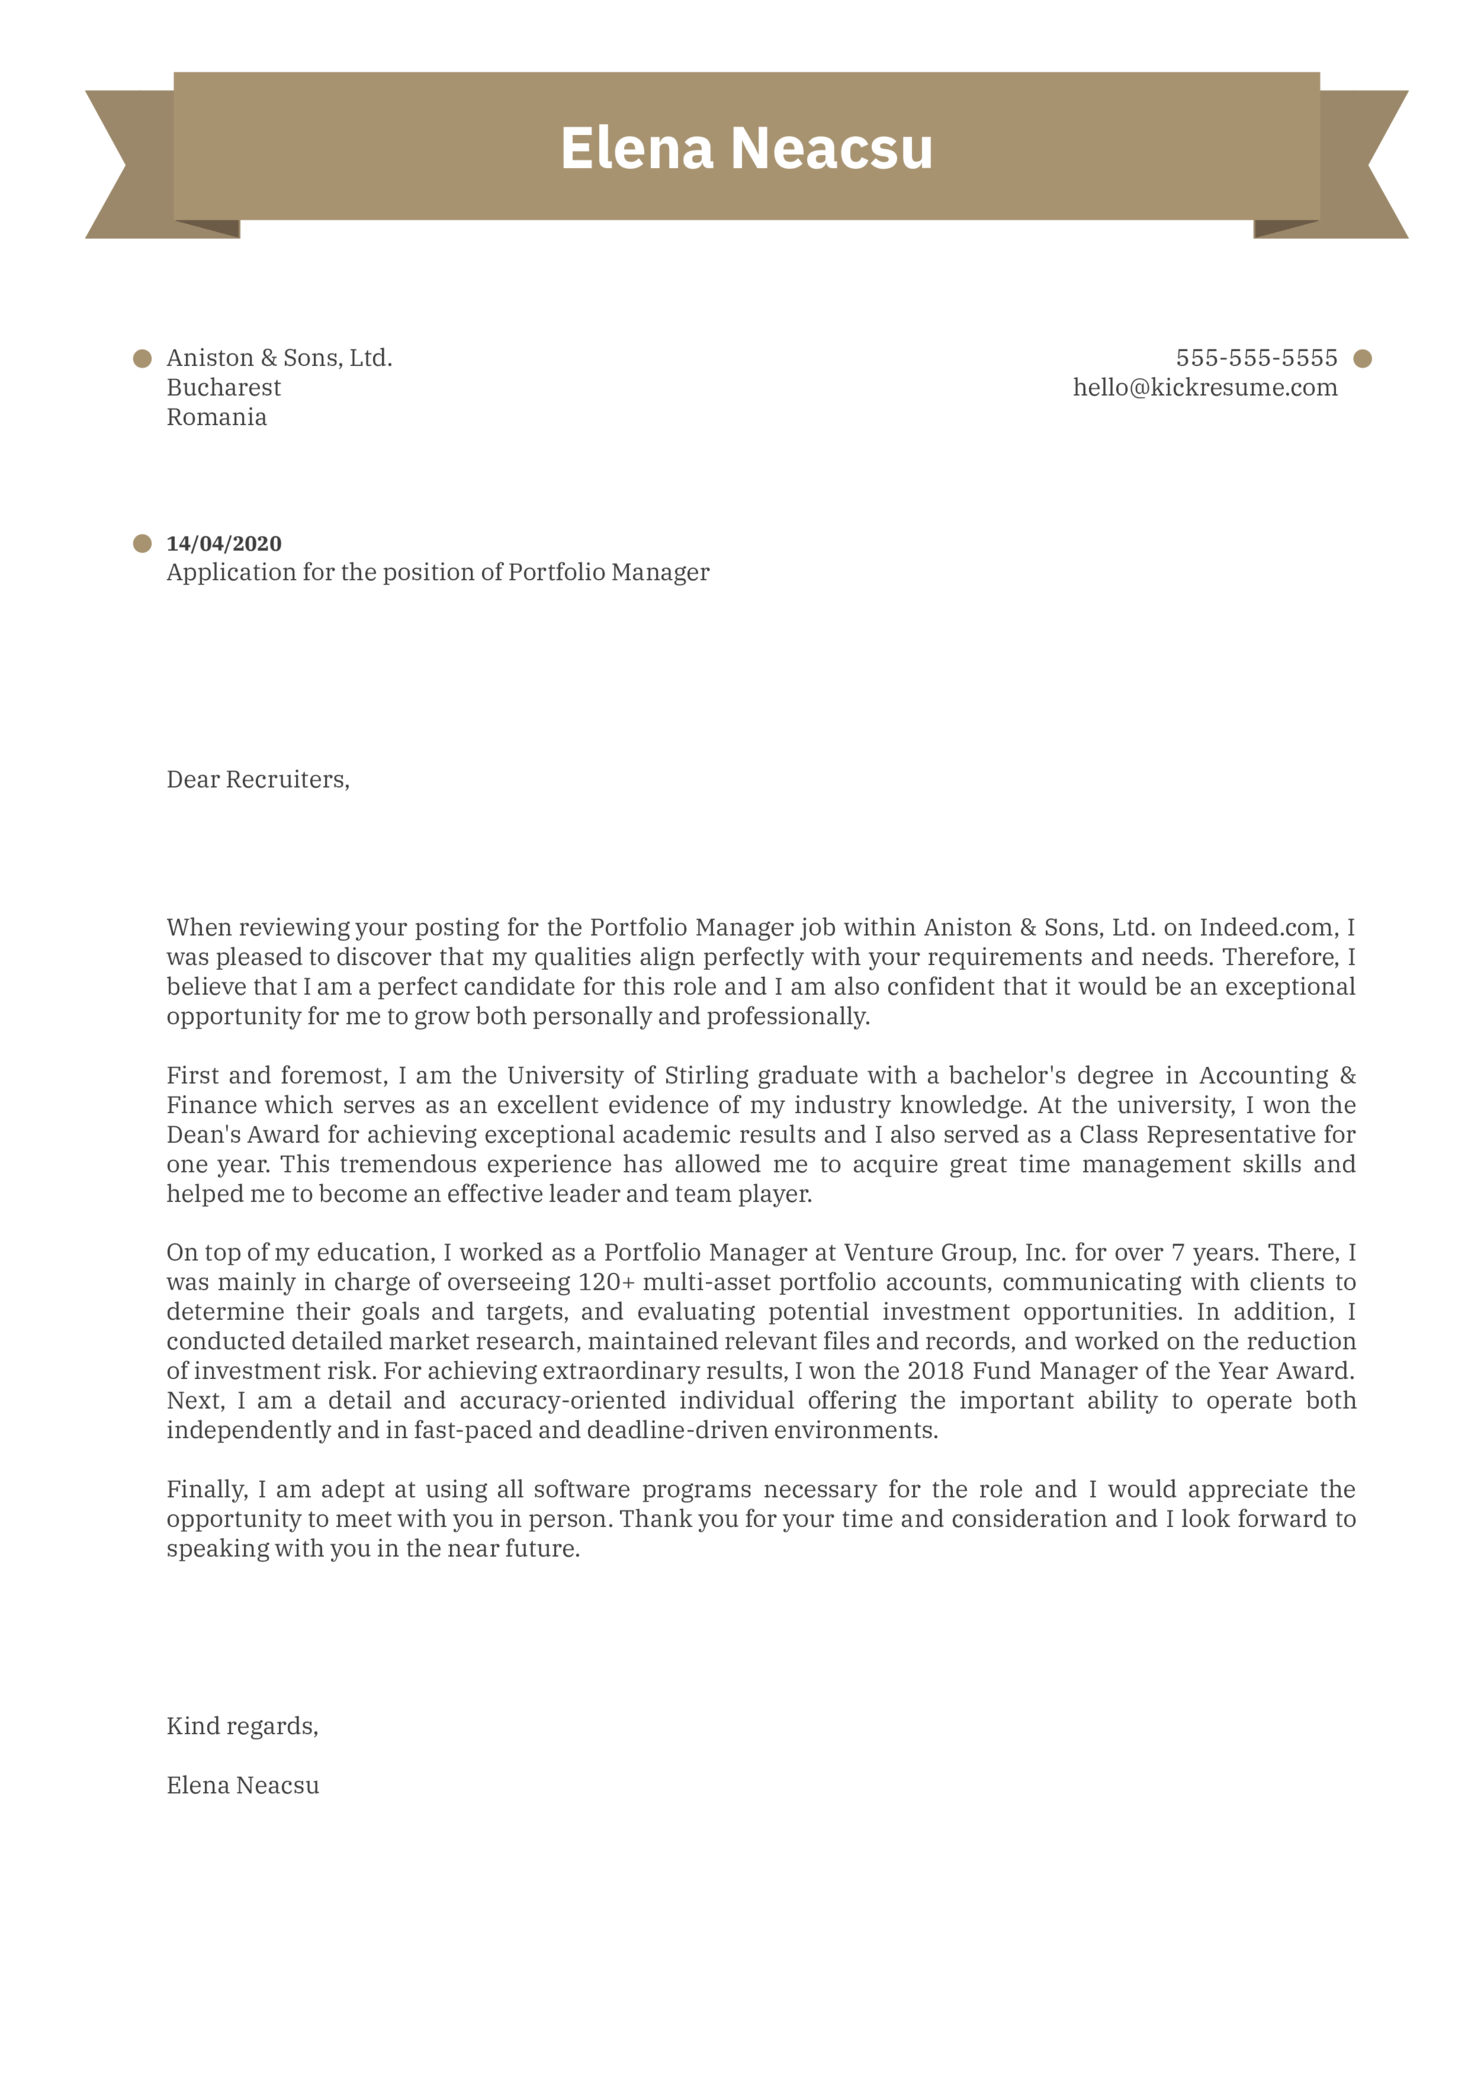 Portfolio Manager Cover Letter Example